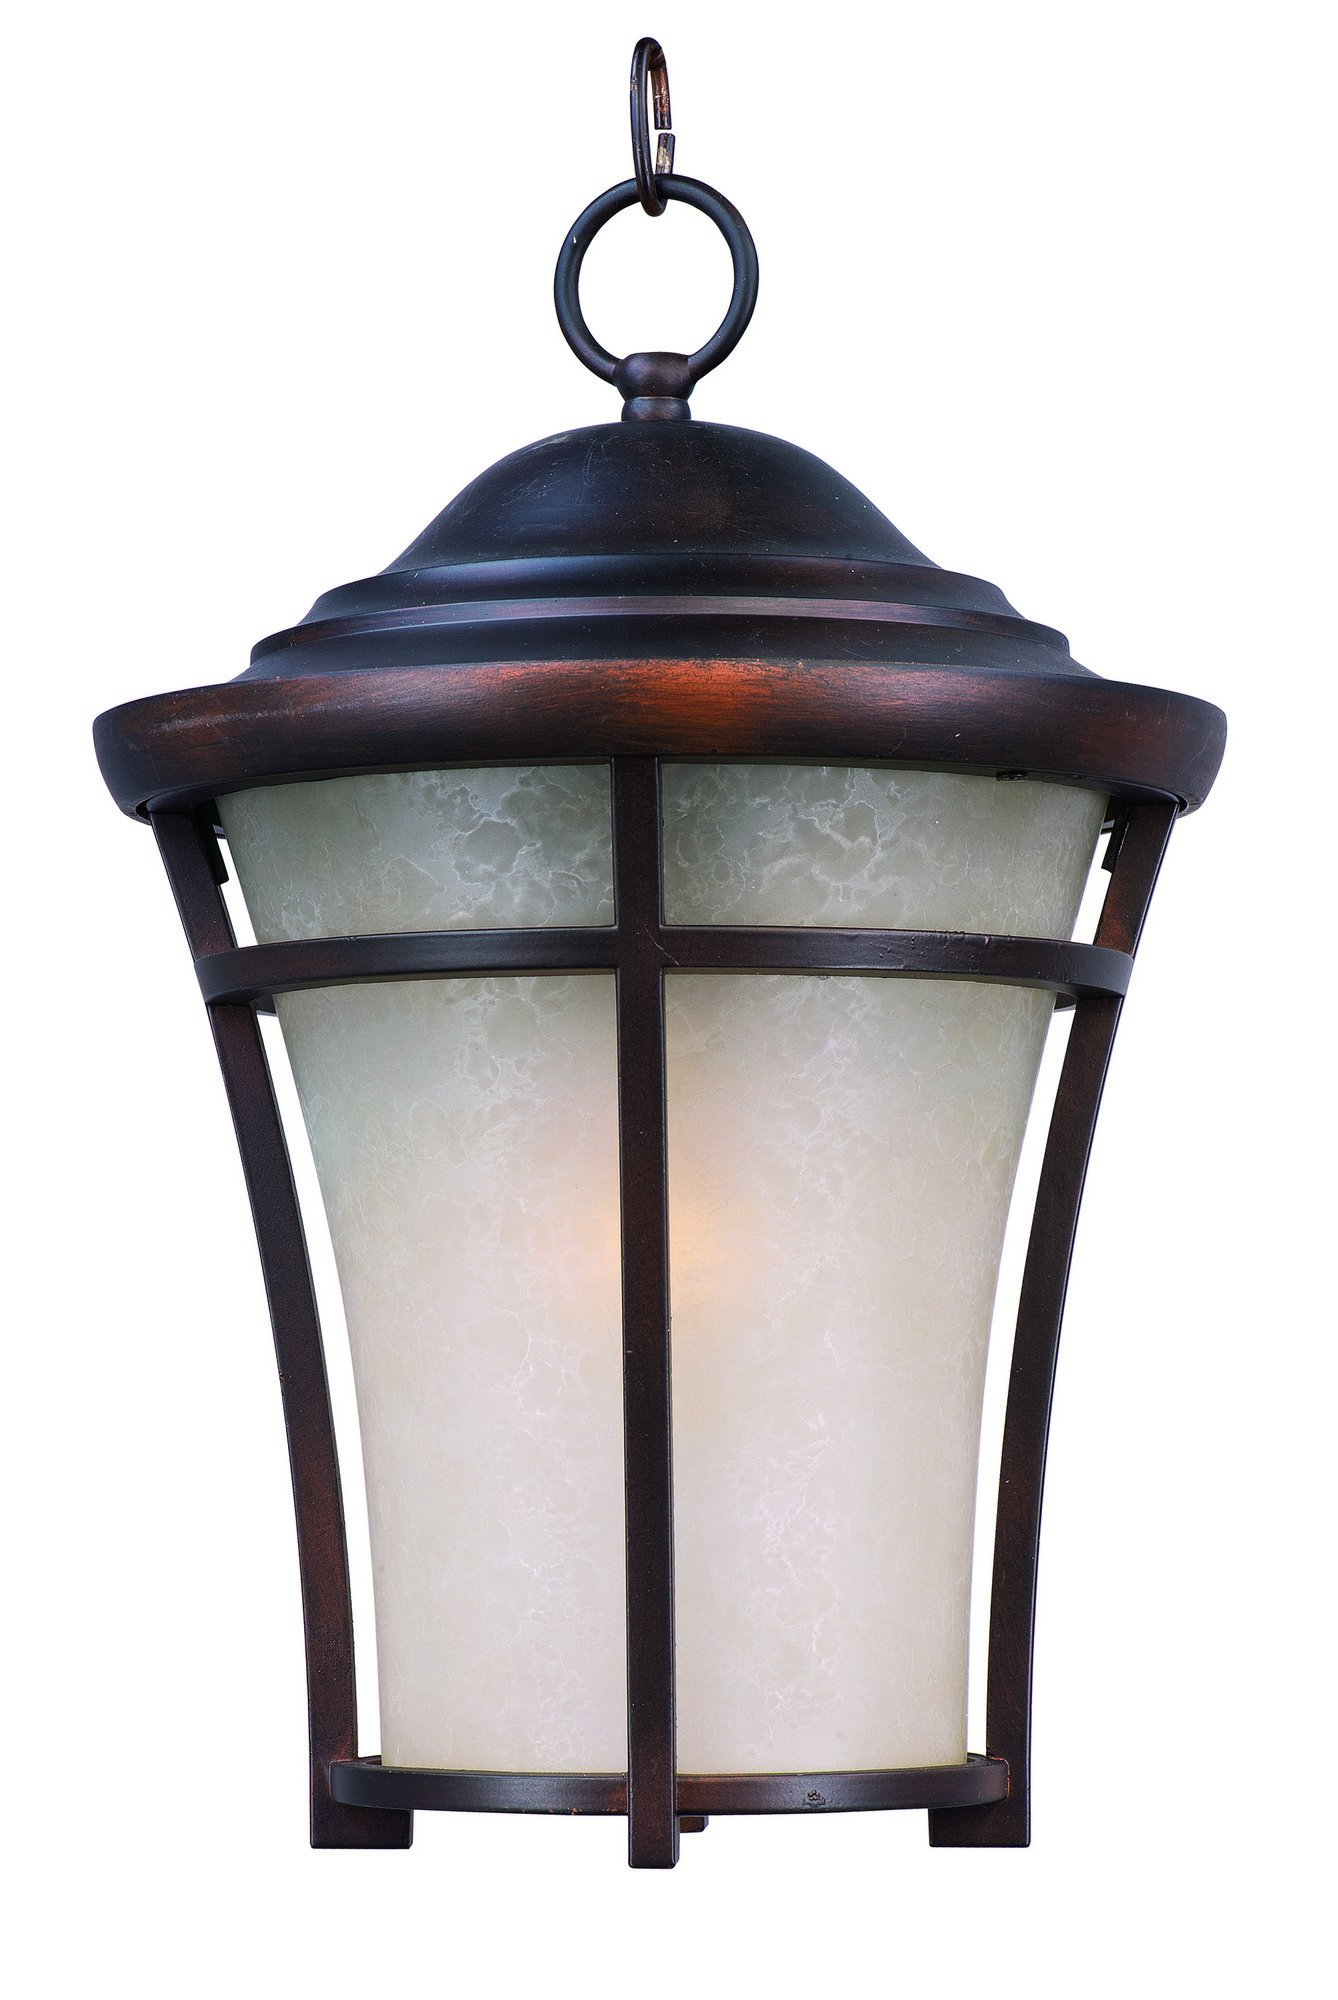 Maxim 3809LACO Balboa DC 1-Light Large Outdoor Hanging, Copper Oxide Finish, Lace Glass, MB Incandescent Incandescent Bulb , 13W Max., Wet Safety Rating, Shade Material, 900 Rated Lumens